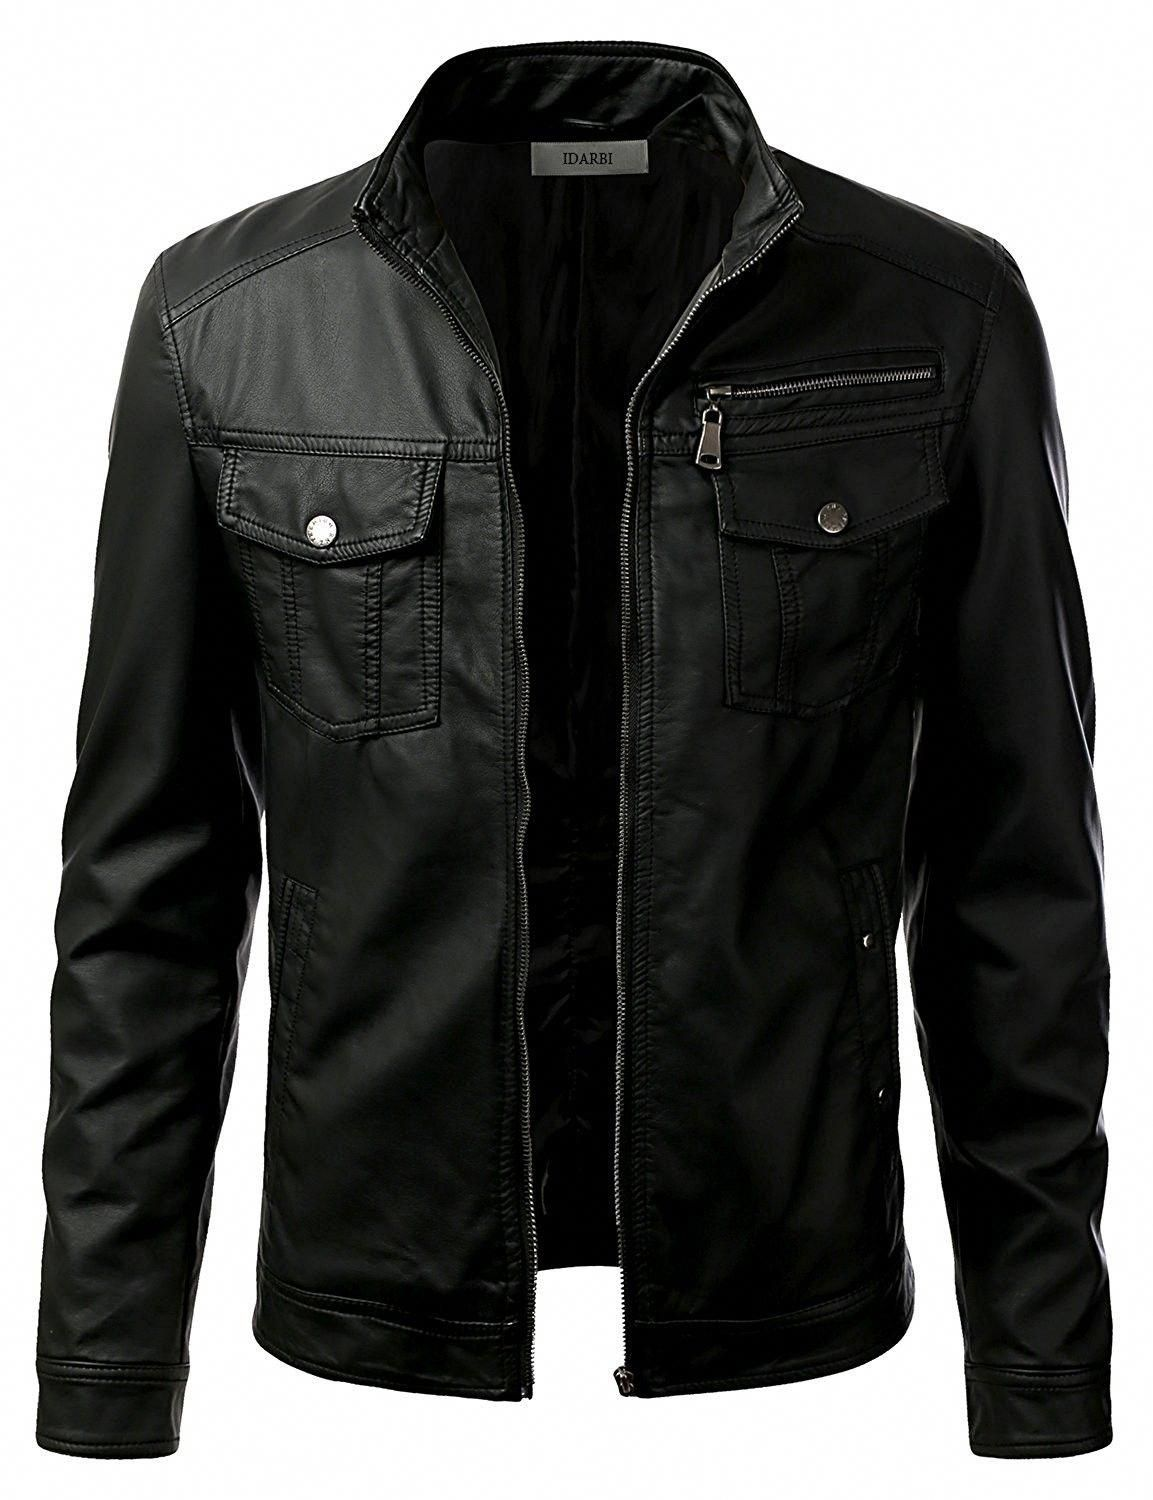 Men's Clothing, Jackets & Coats, Leather & Faux Leather